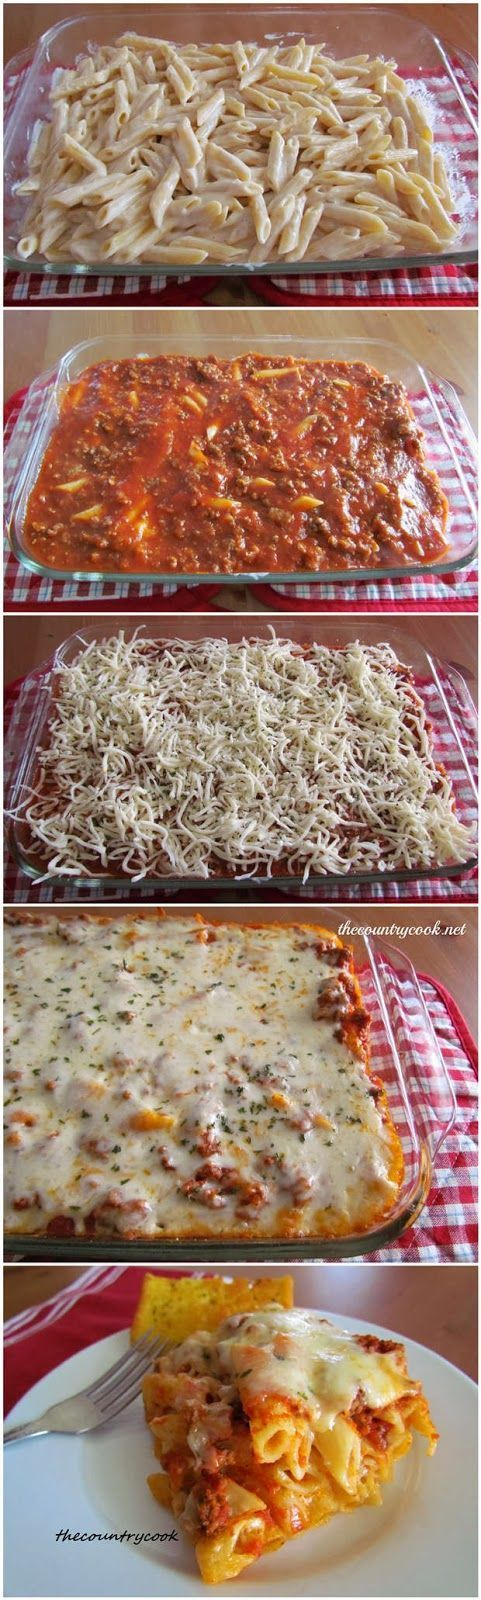 Easy baked ziti #chickenbreastrecipeseasy